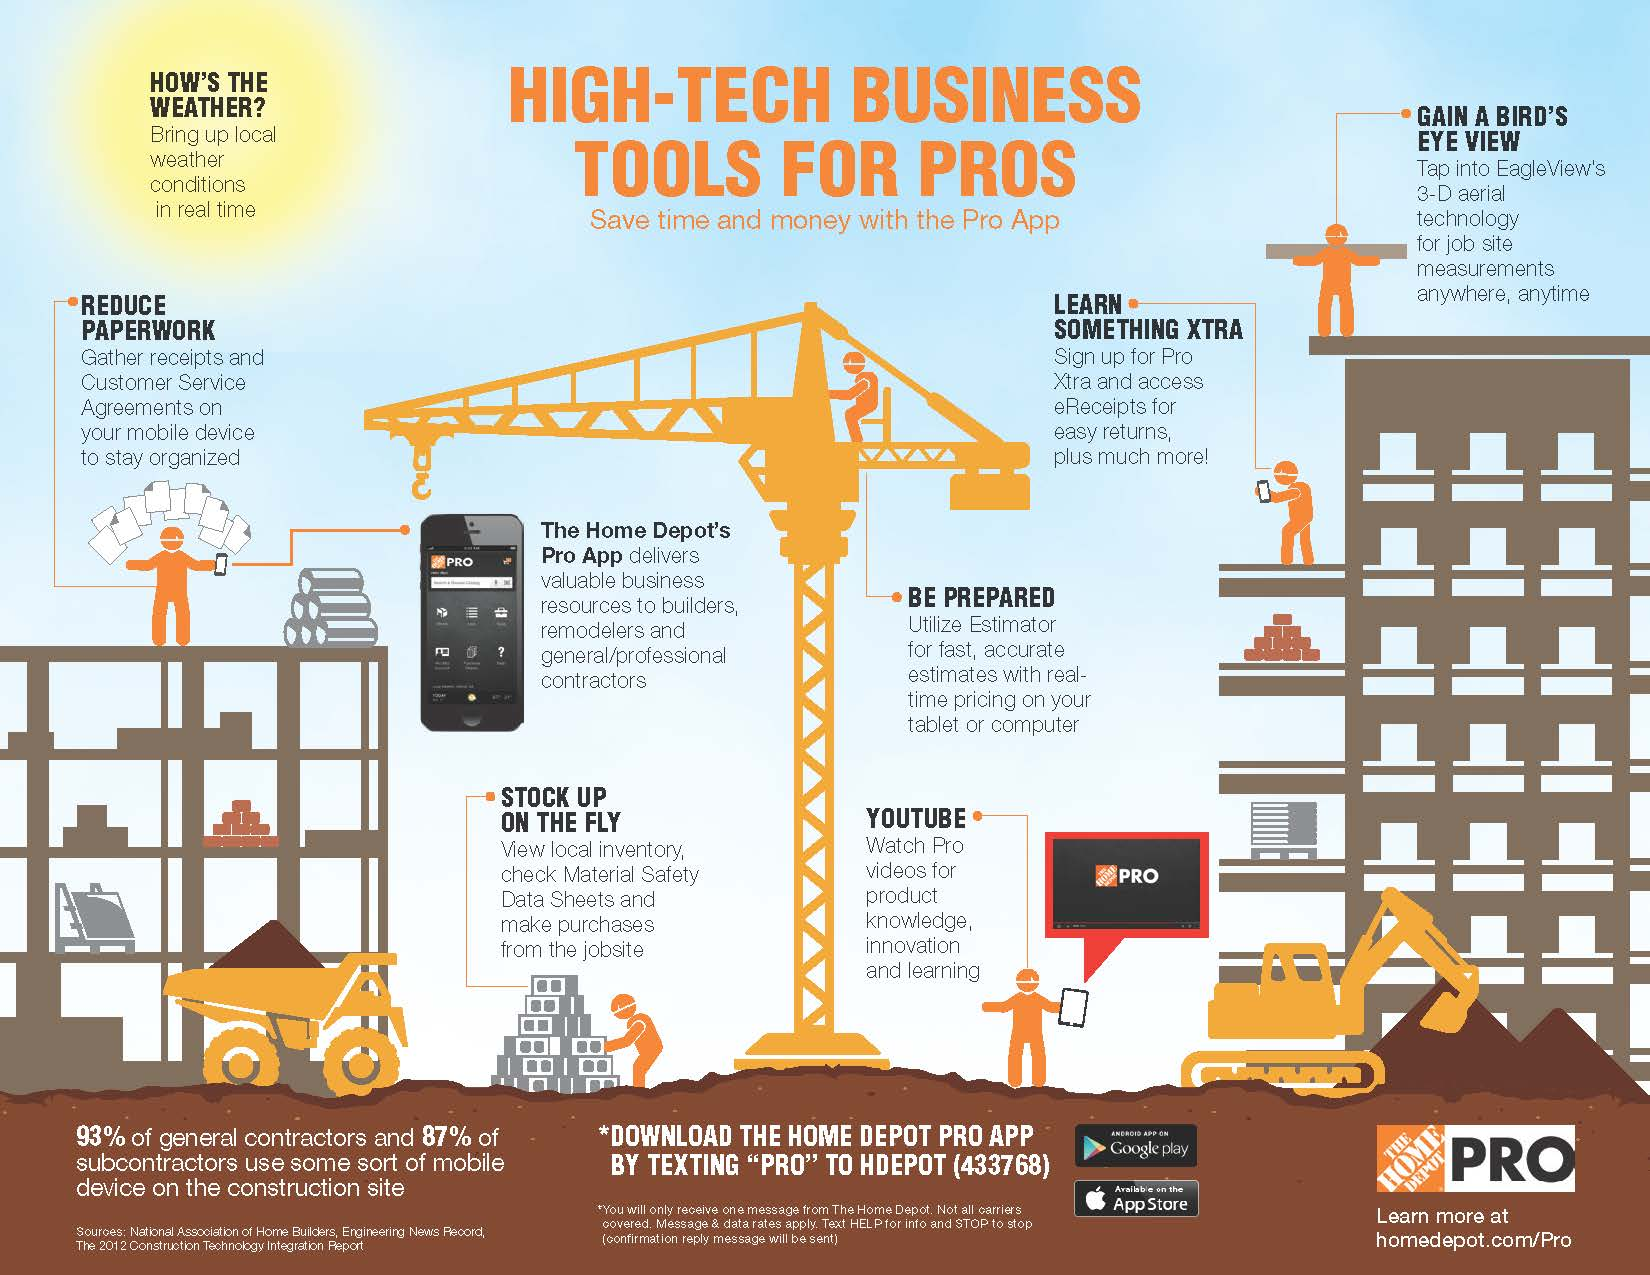 Home depot app Pro Tech_Infographic_FINAL